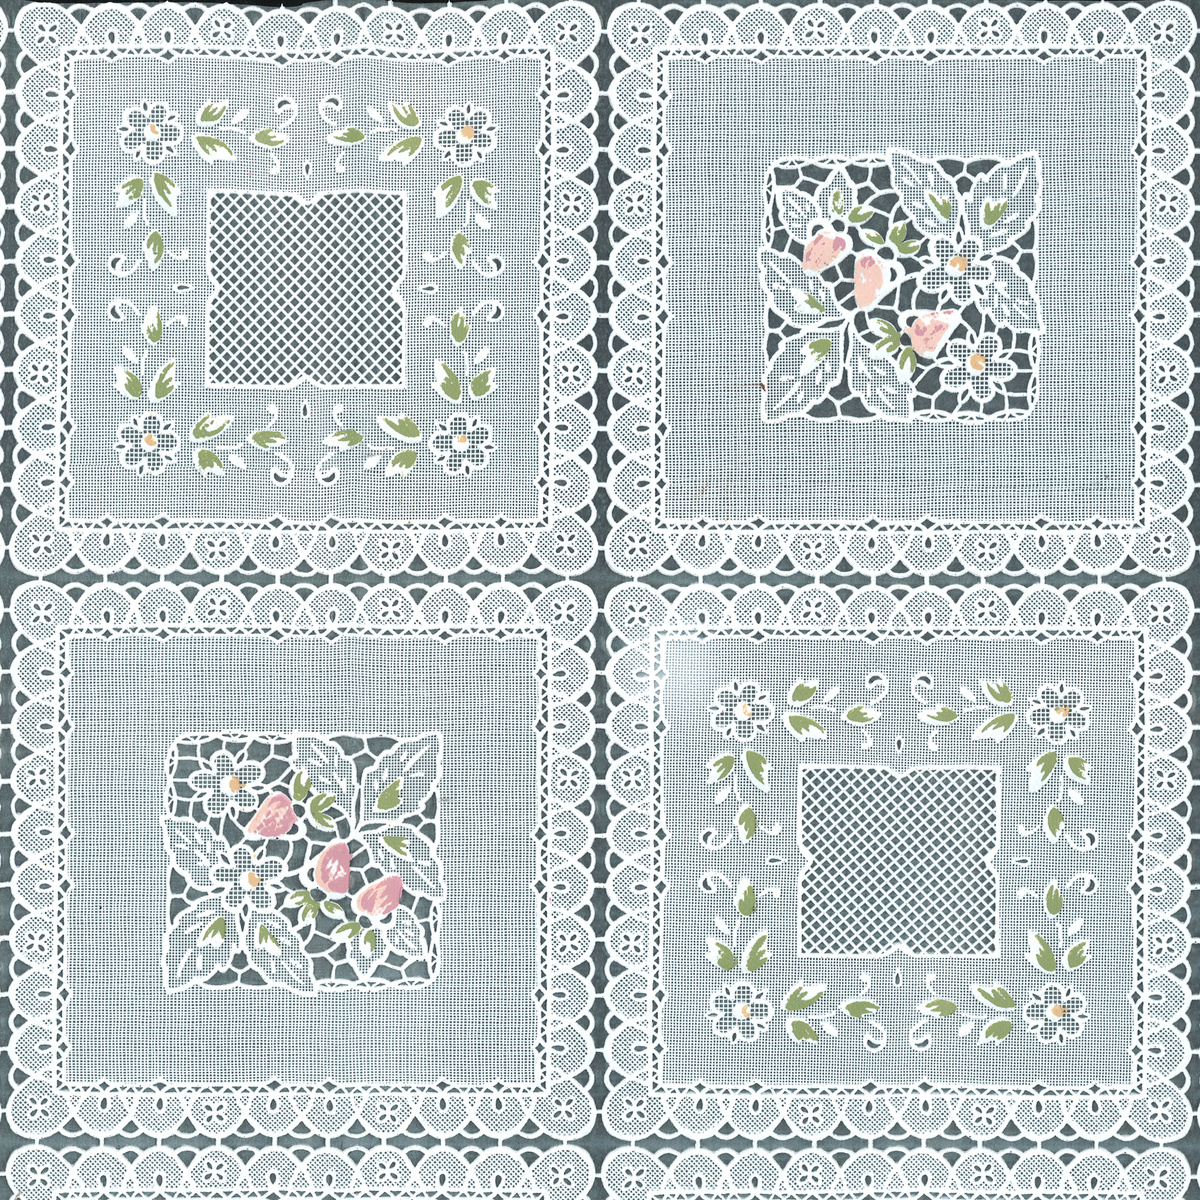 tablecloth vinyl squares floral joann artistic accents silver and white table lamp uttermost asher blue accent glass wood tables replacement cushions linen placemats patio